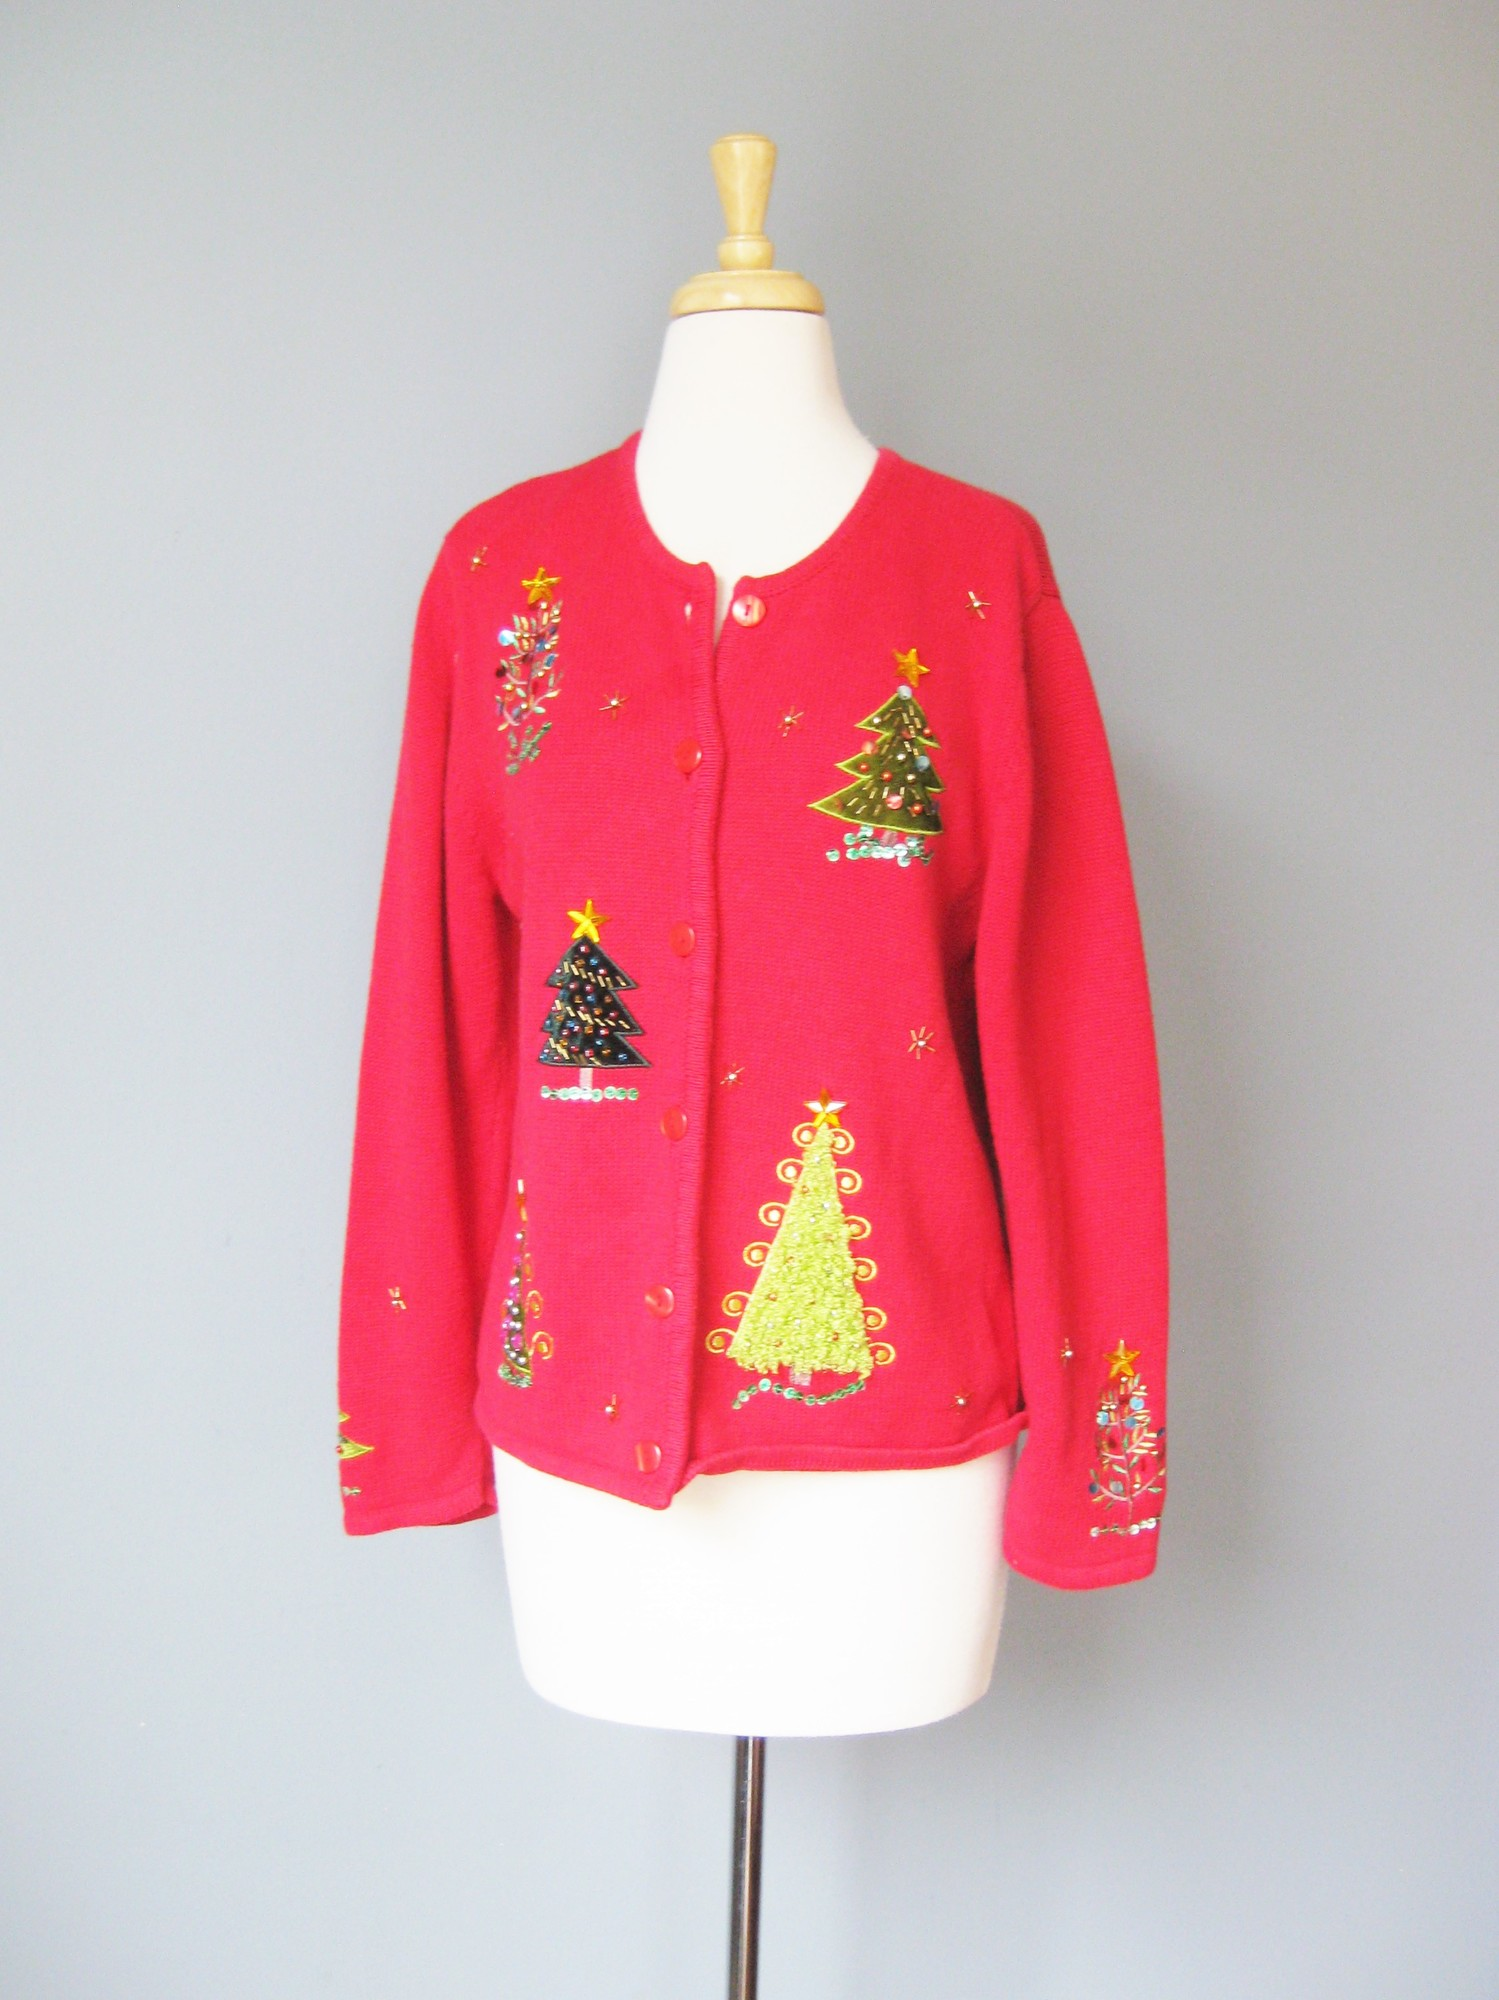 very pretty red cardigan with a Cheery Christmas Theme.<br /> Really nicely worked Tree appliques, and beading, even on the sleeves<br /> by<br /> Krystal Kobe<br /> Size M<br /> 55% ramie<br /> 45% cotton<br /> red plastic buttons<br /> Flat measurements:<br /> armpit to armpit: 19.5in<br /> width at hem: 20.25in<br /> underarm sleeve seam length: 16in<br /> length: 22.25in<br /> <br /> perfect condition<br /> Thanks for looking1<br /> #15943